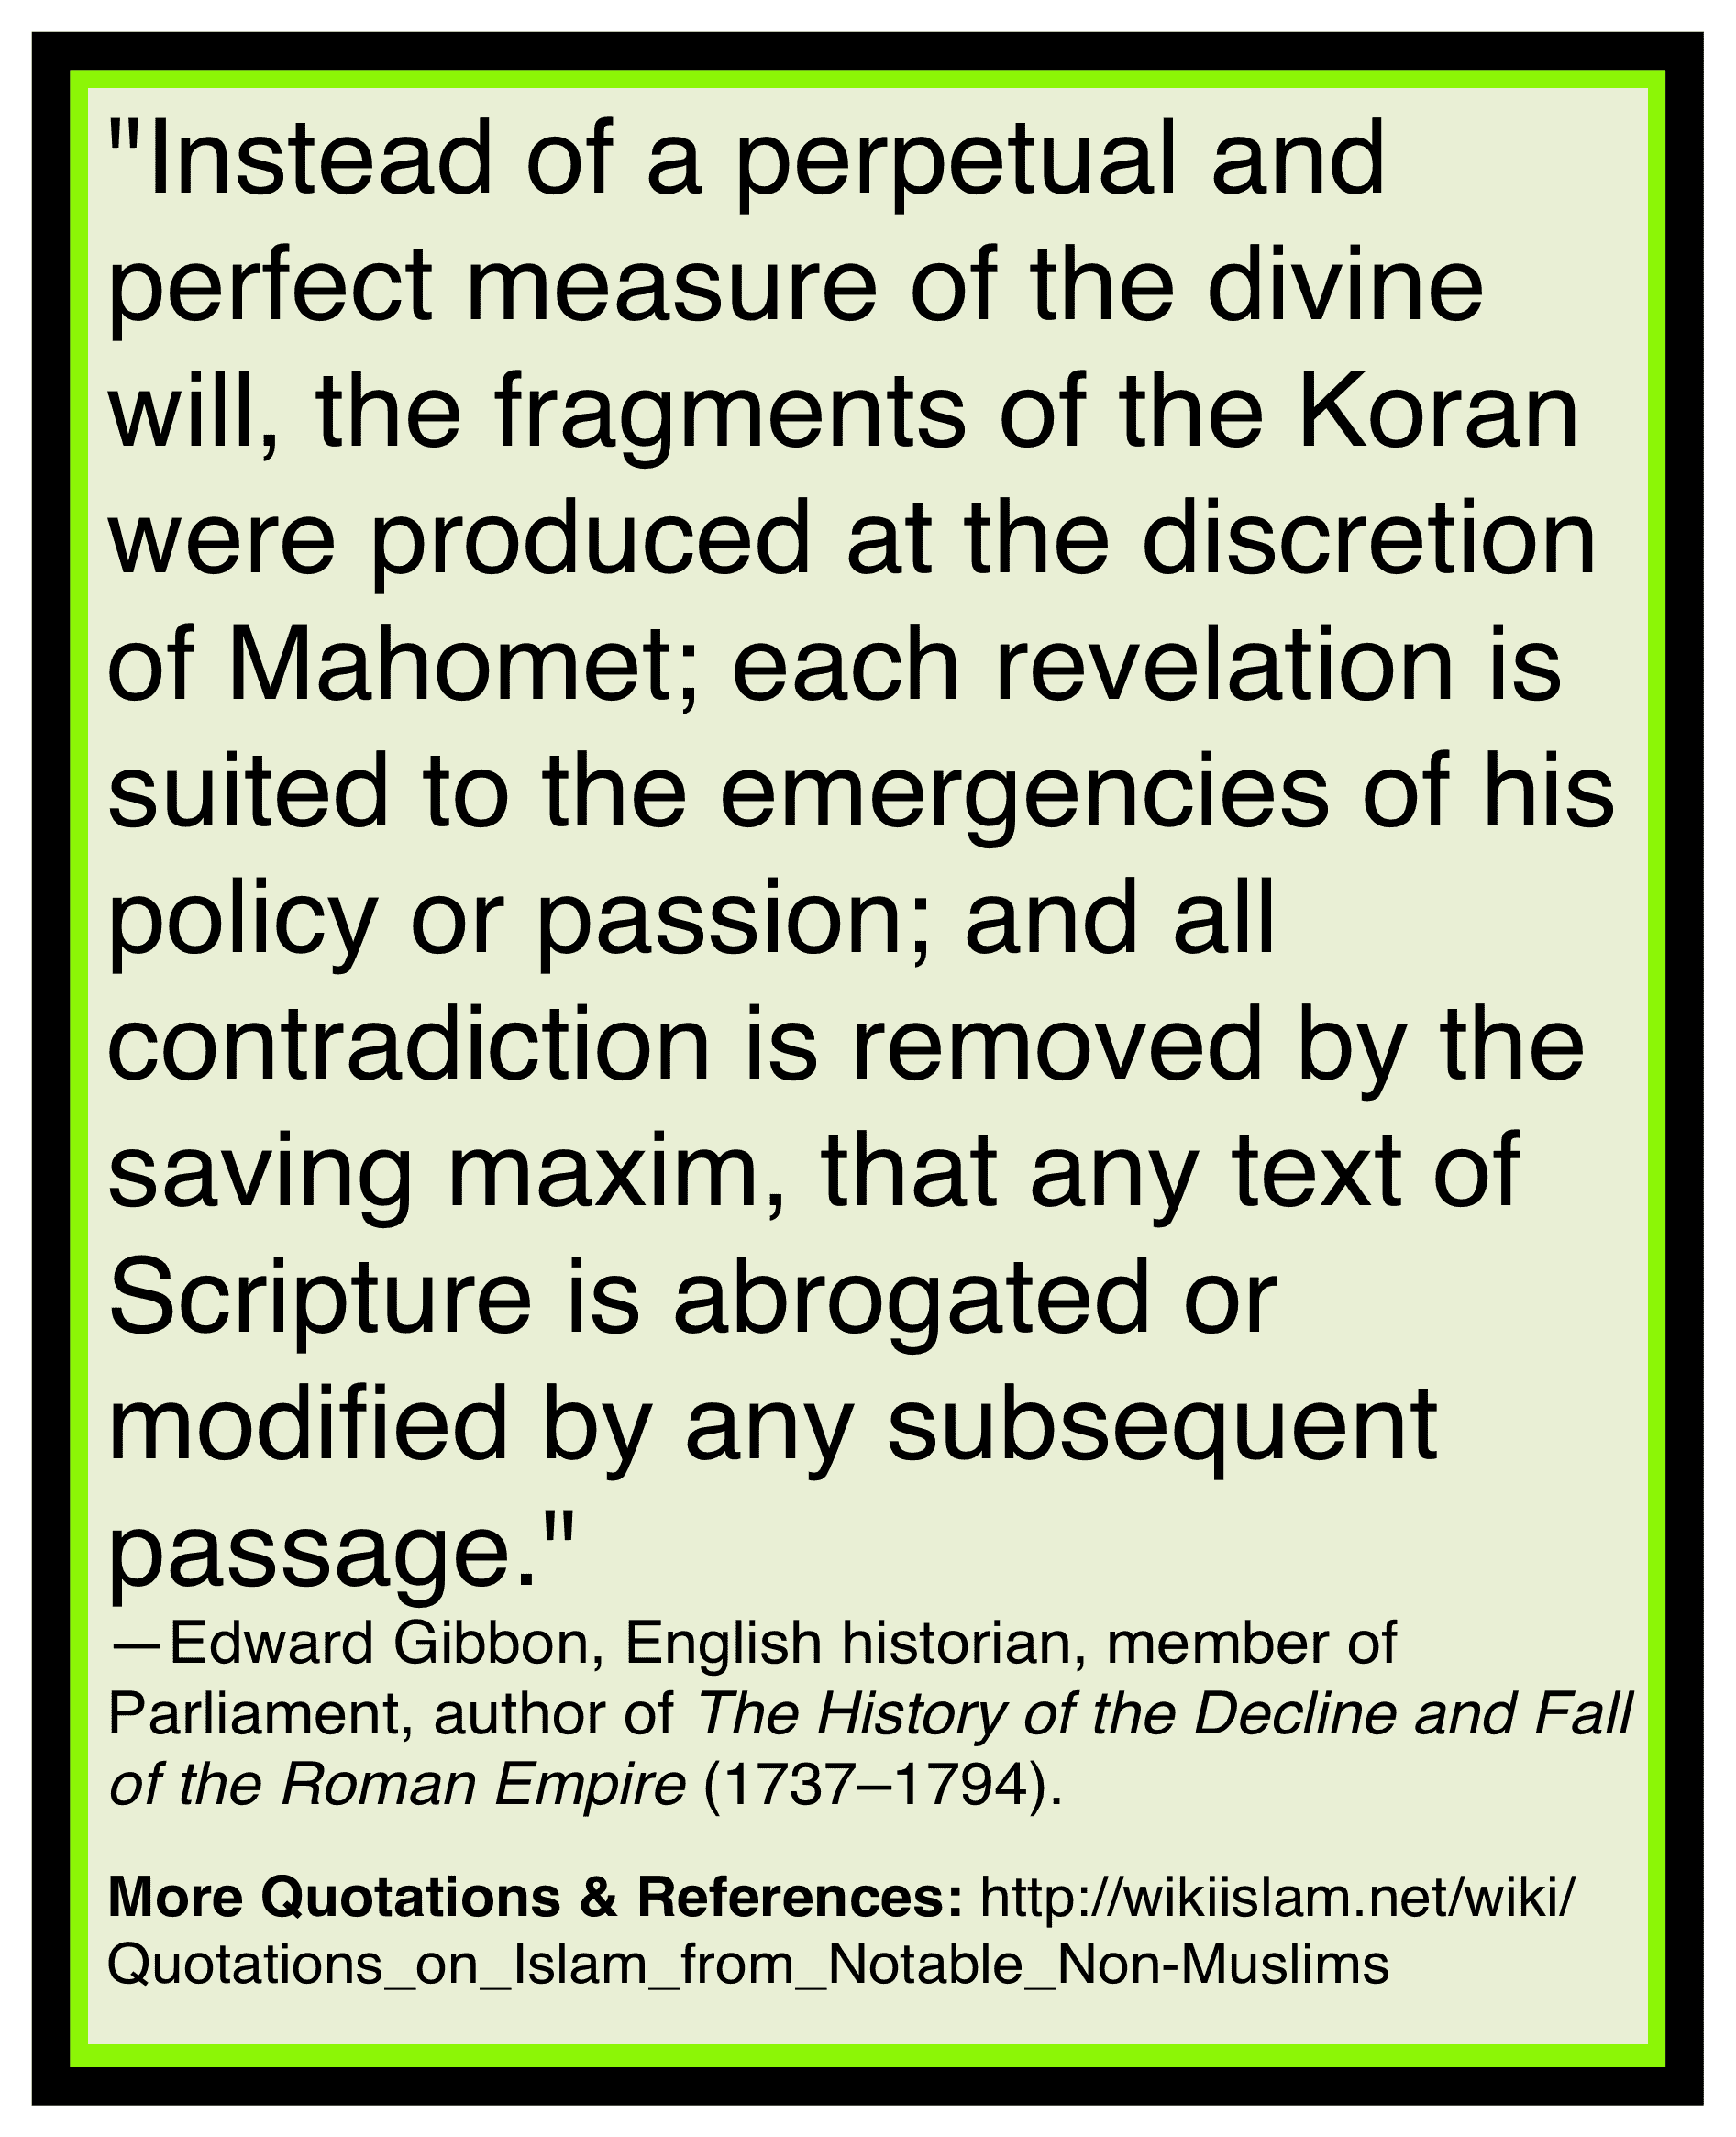 Quran covers its own lies